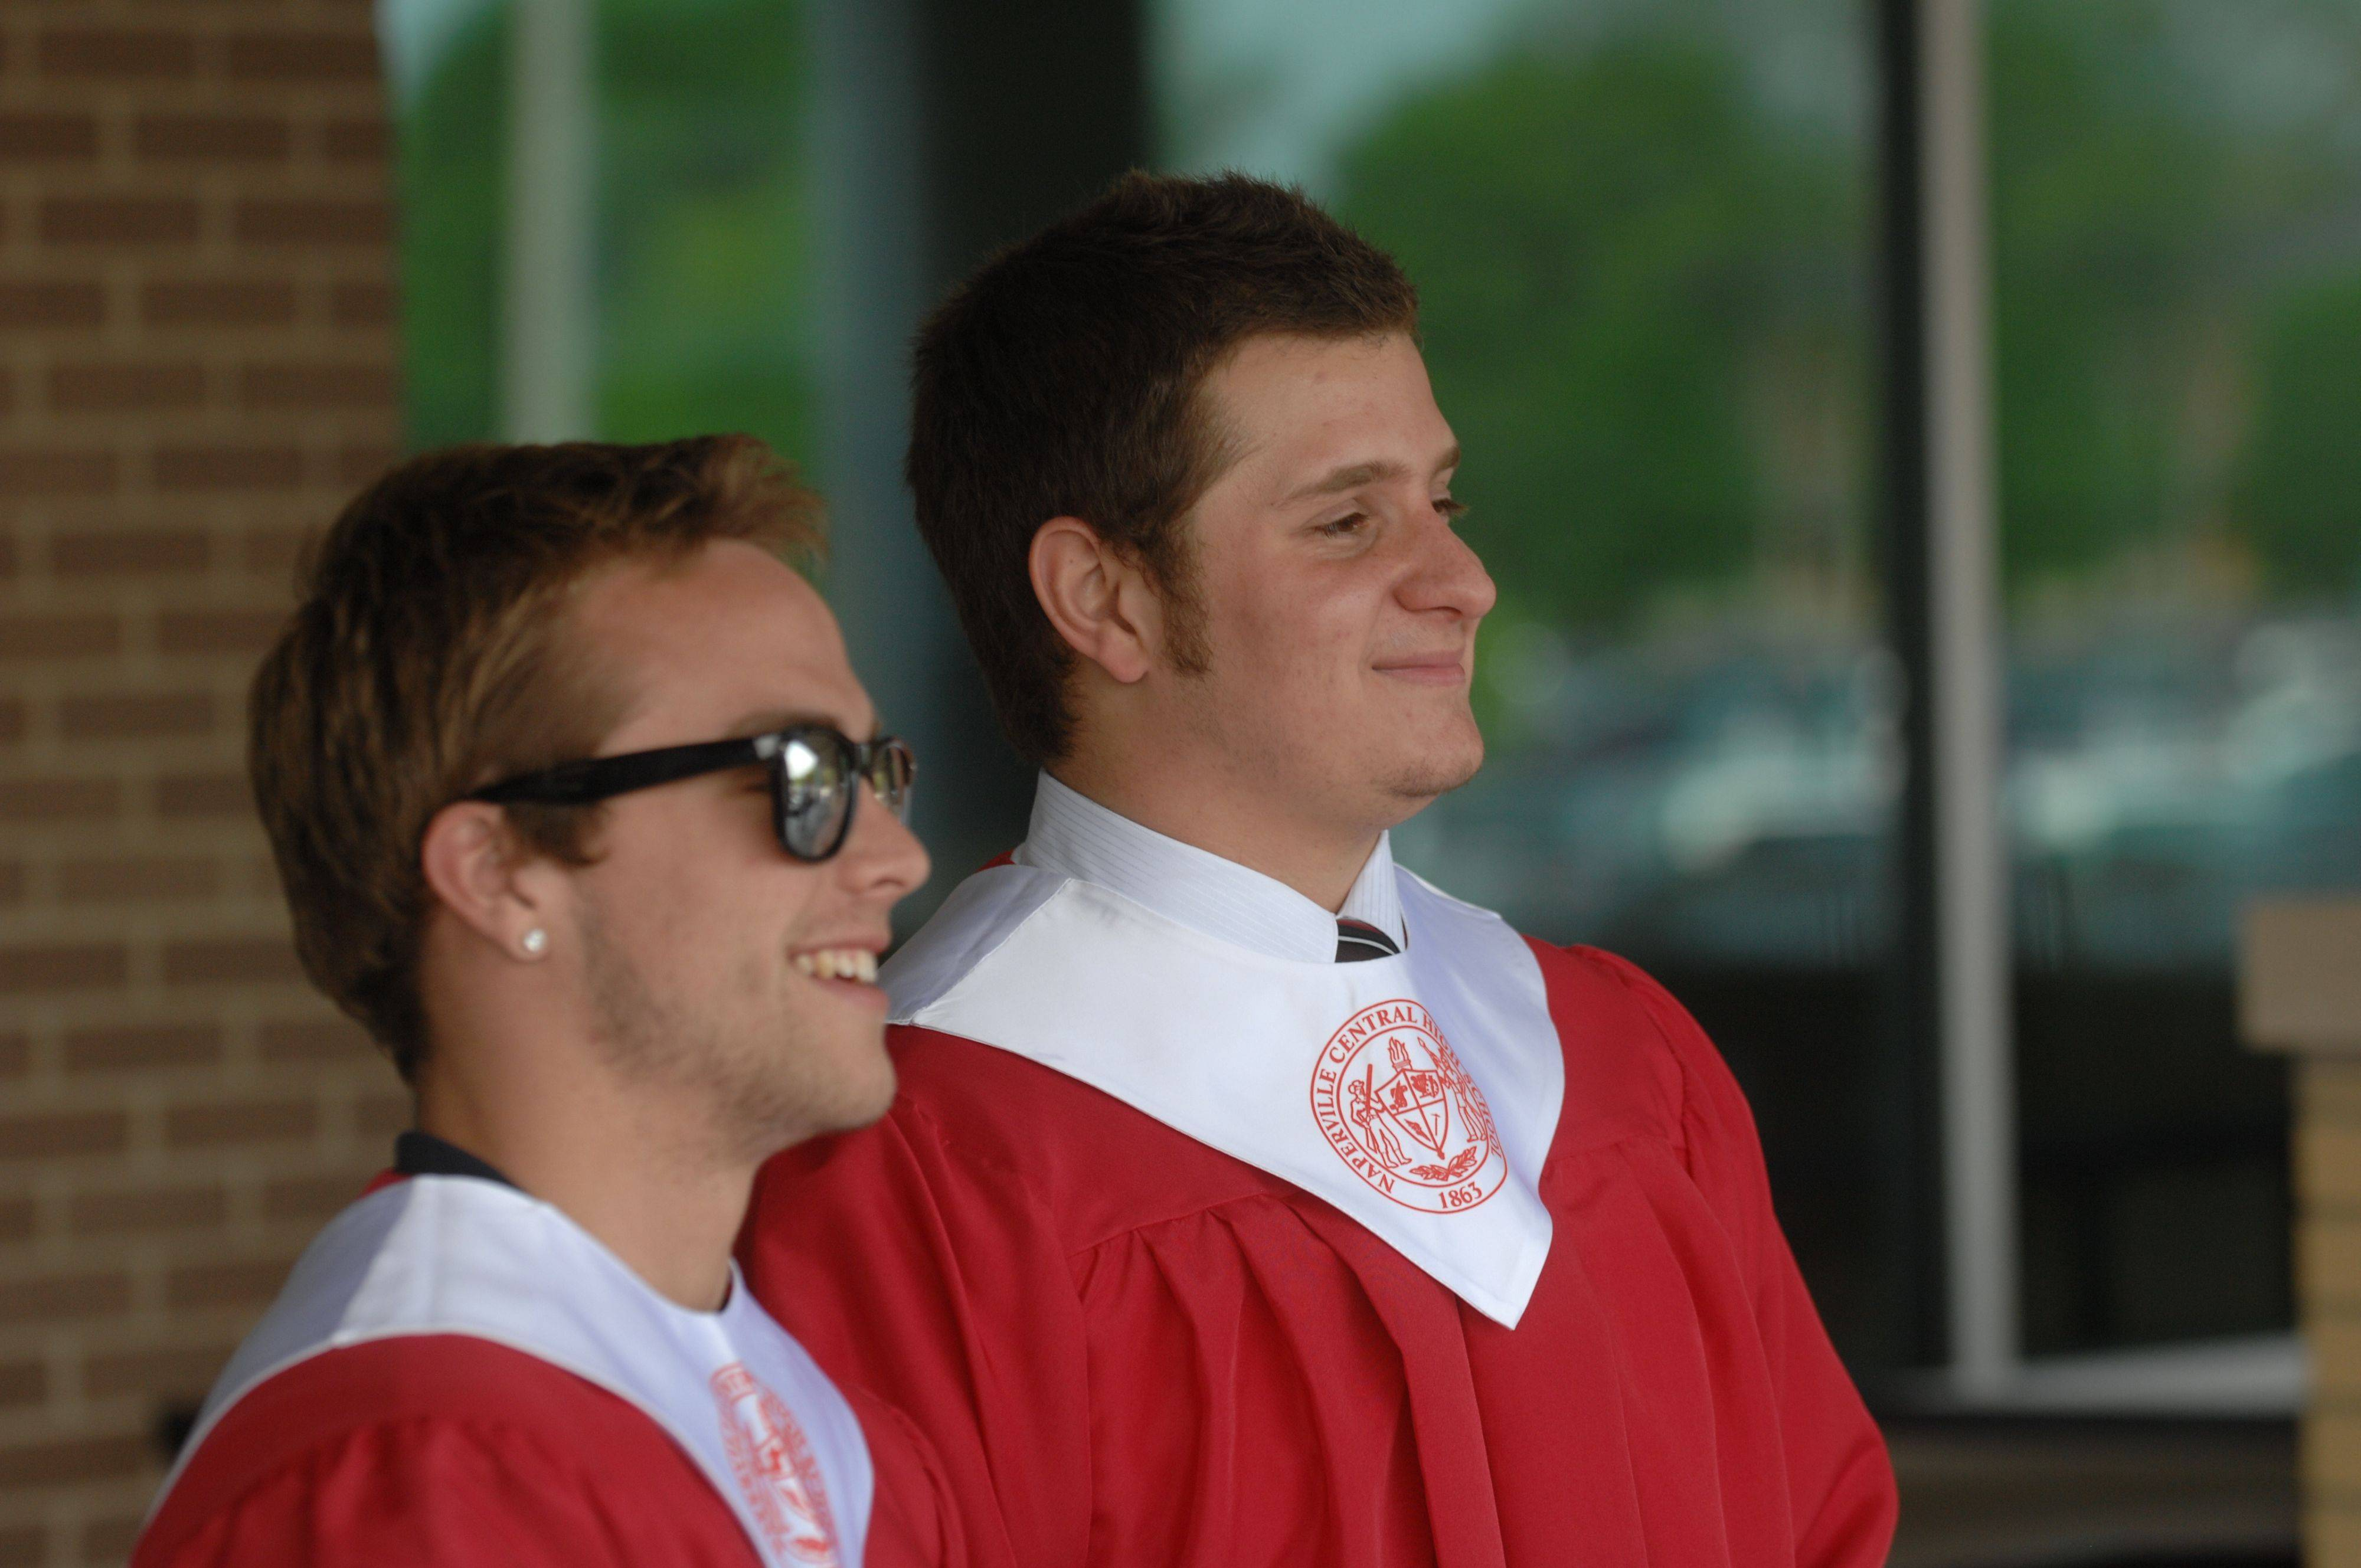 Images from the Naperville Central High School graduation on Wednesday, May 25th.